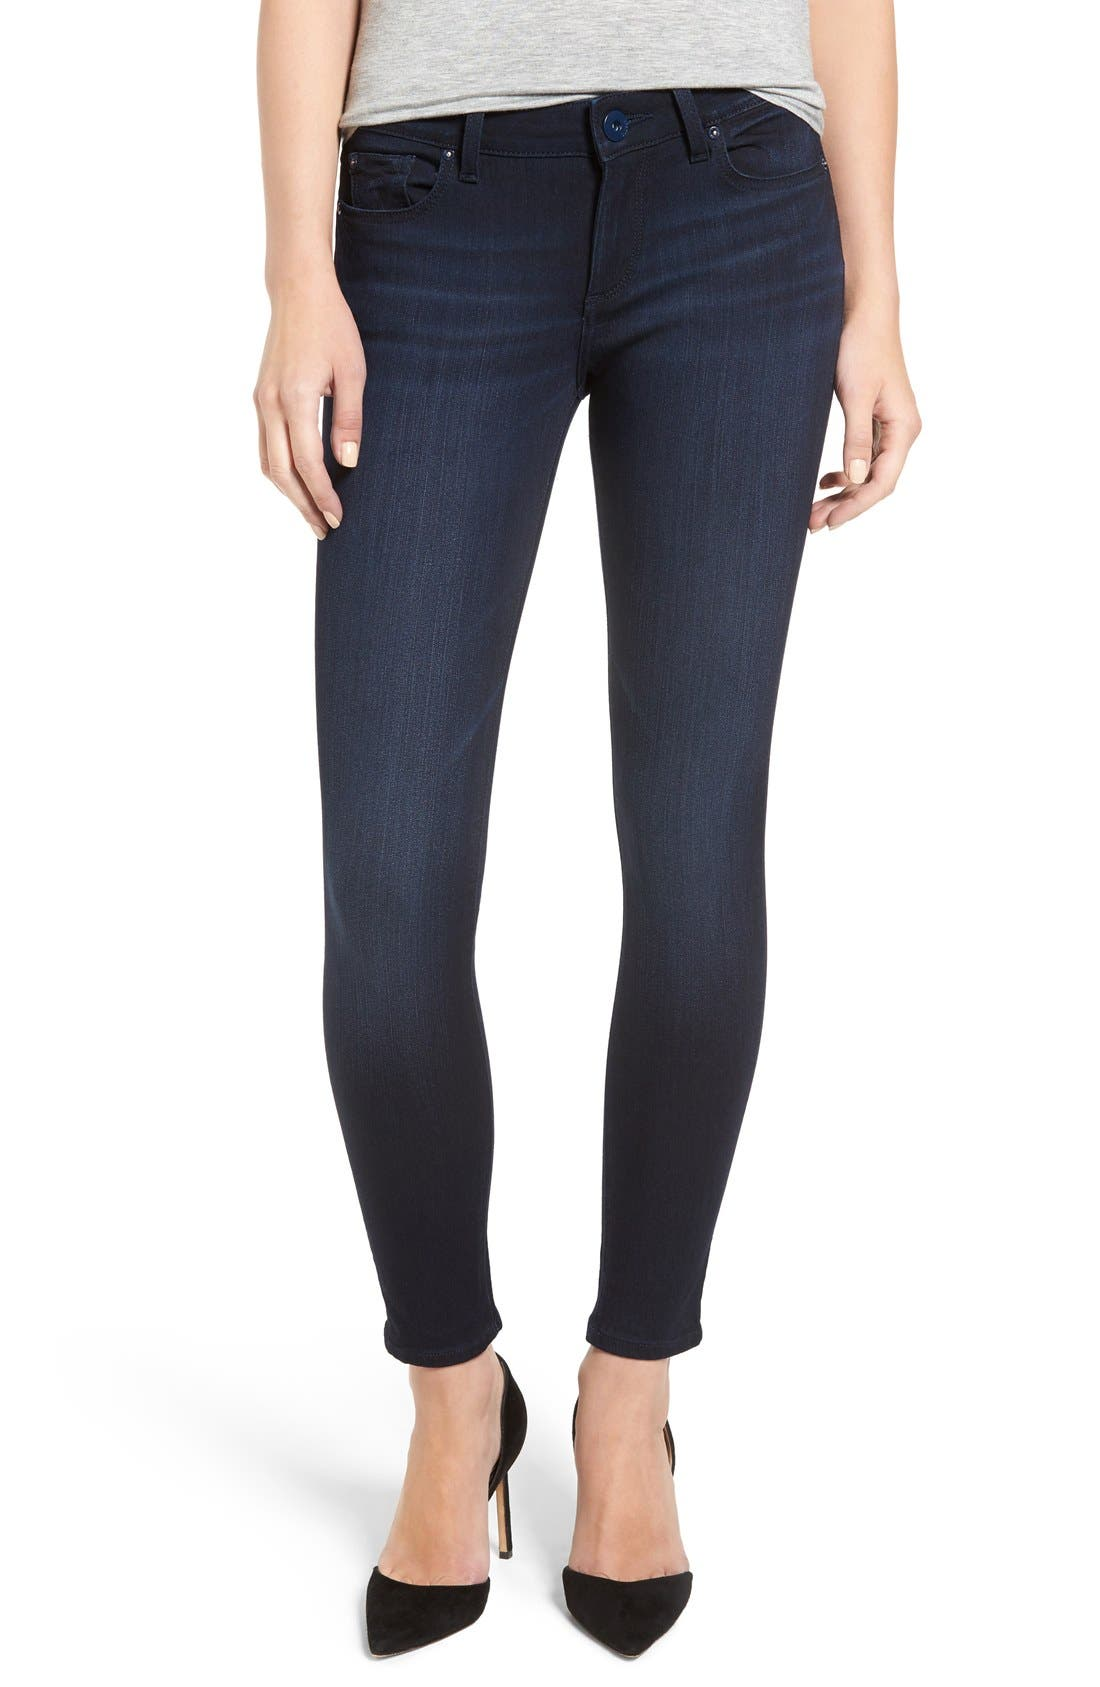 Alternate Image 1 Selected - DL1961 'Emma' Power Legging Jeans (Token)